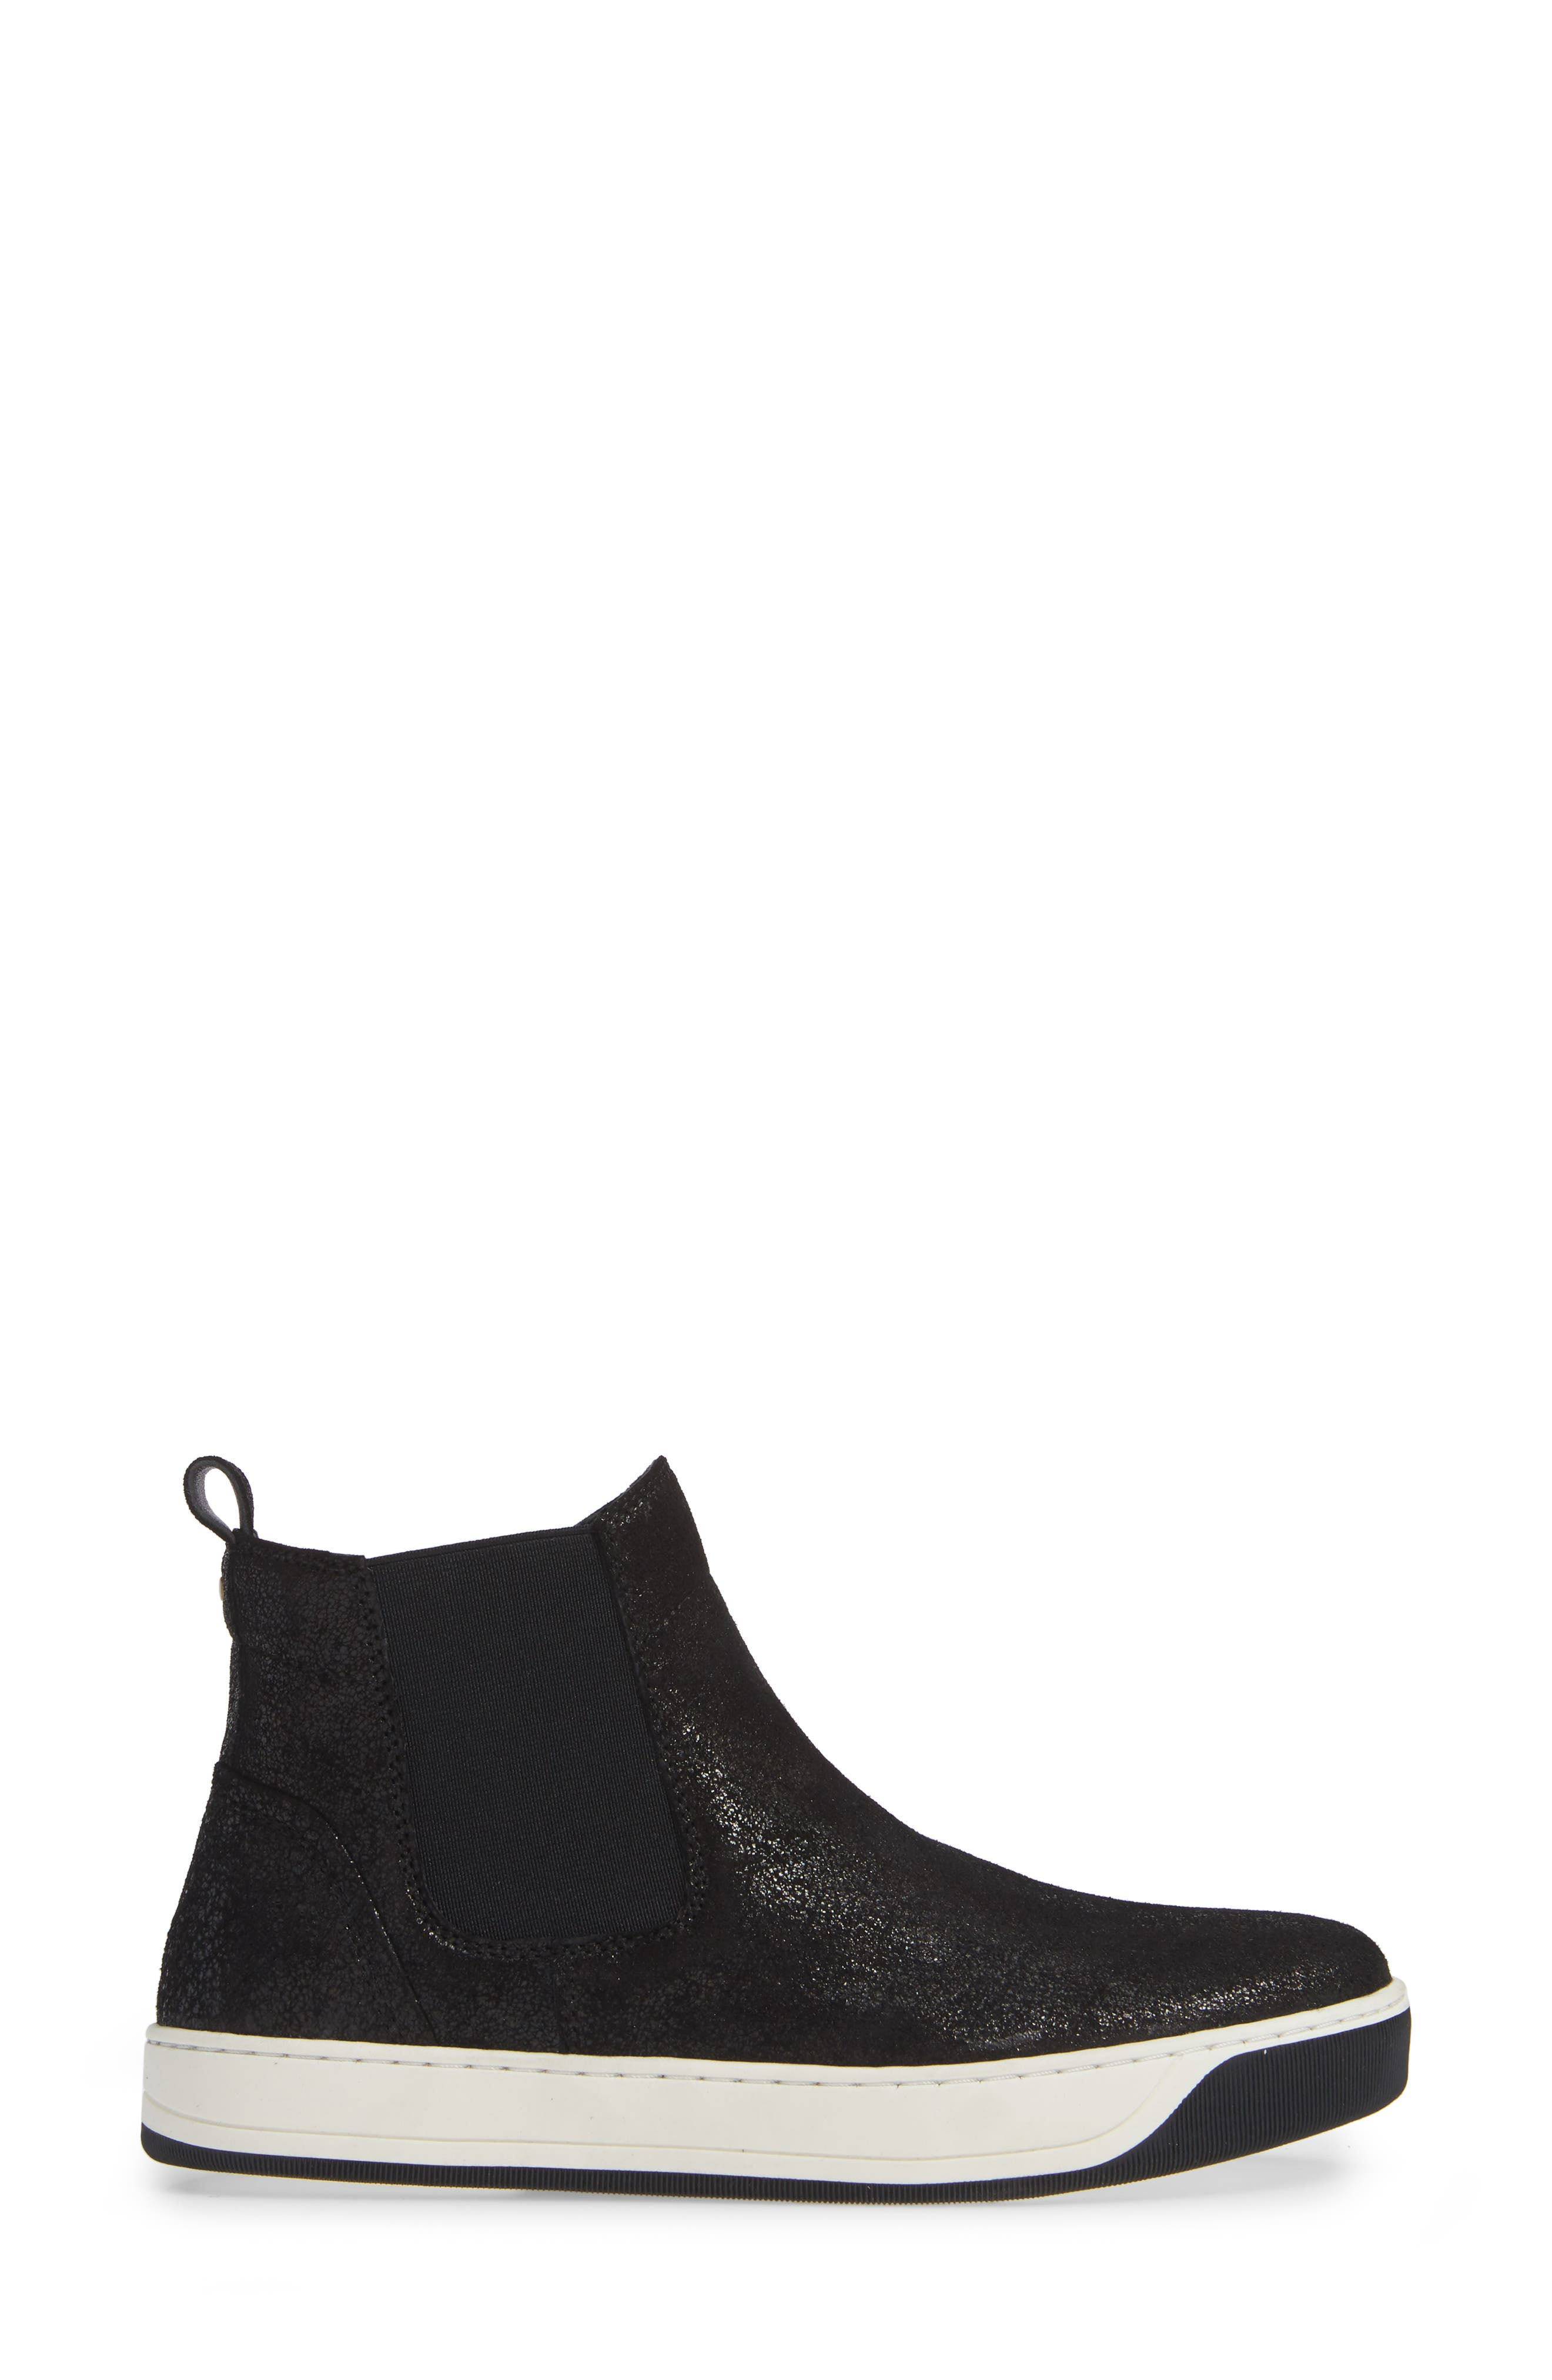 Erica High Top Sneaker,                             Alternate thumbnail 3, color,                             BLACK LEATHER